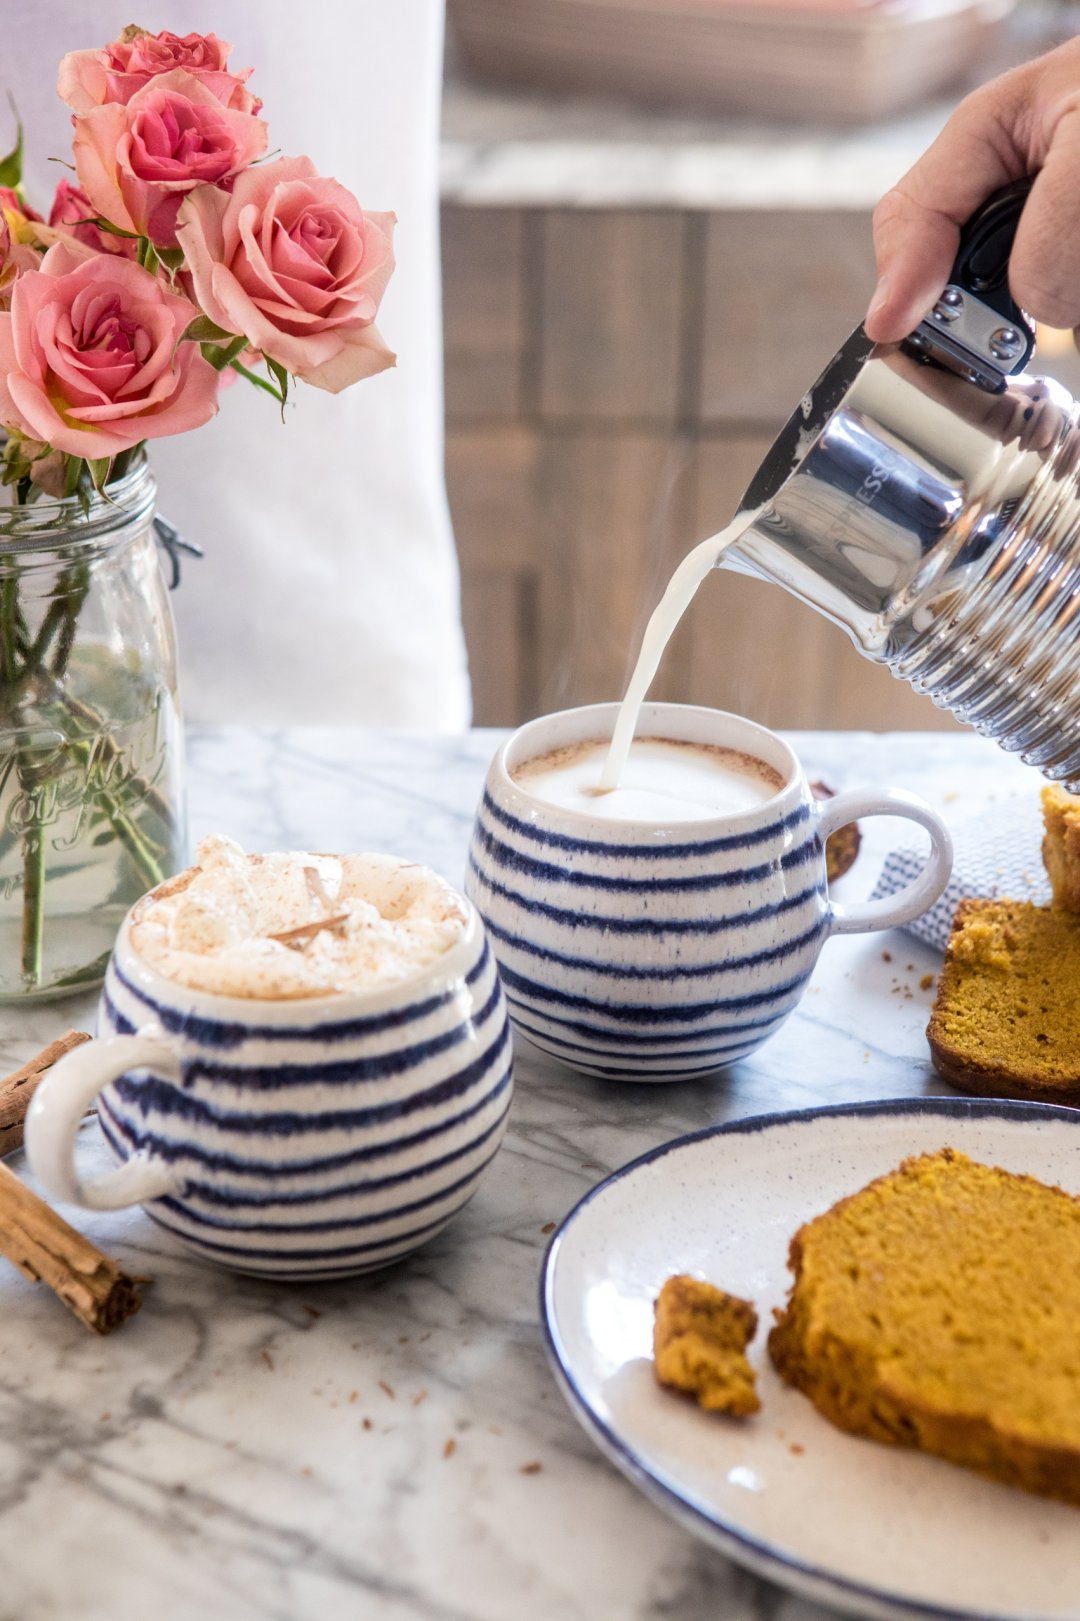 Pouring creamer into chai lattes in blue striped mugs with plate of sliced pumpkin bread on the right